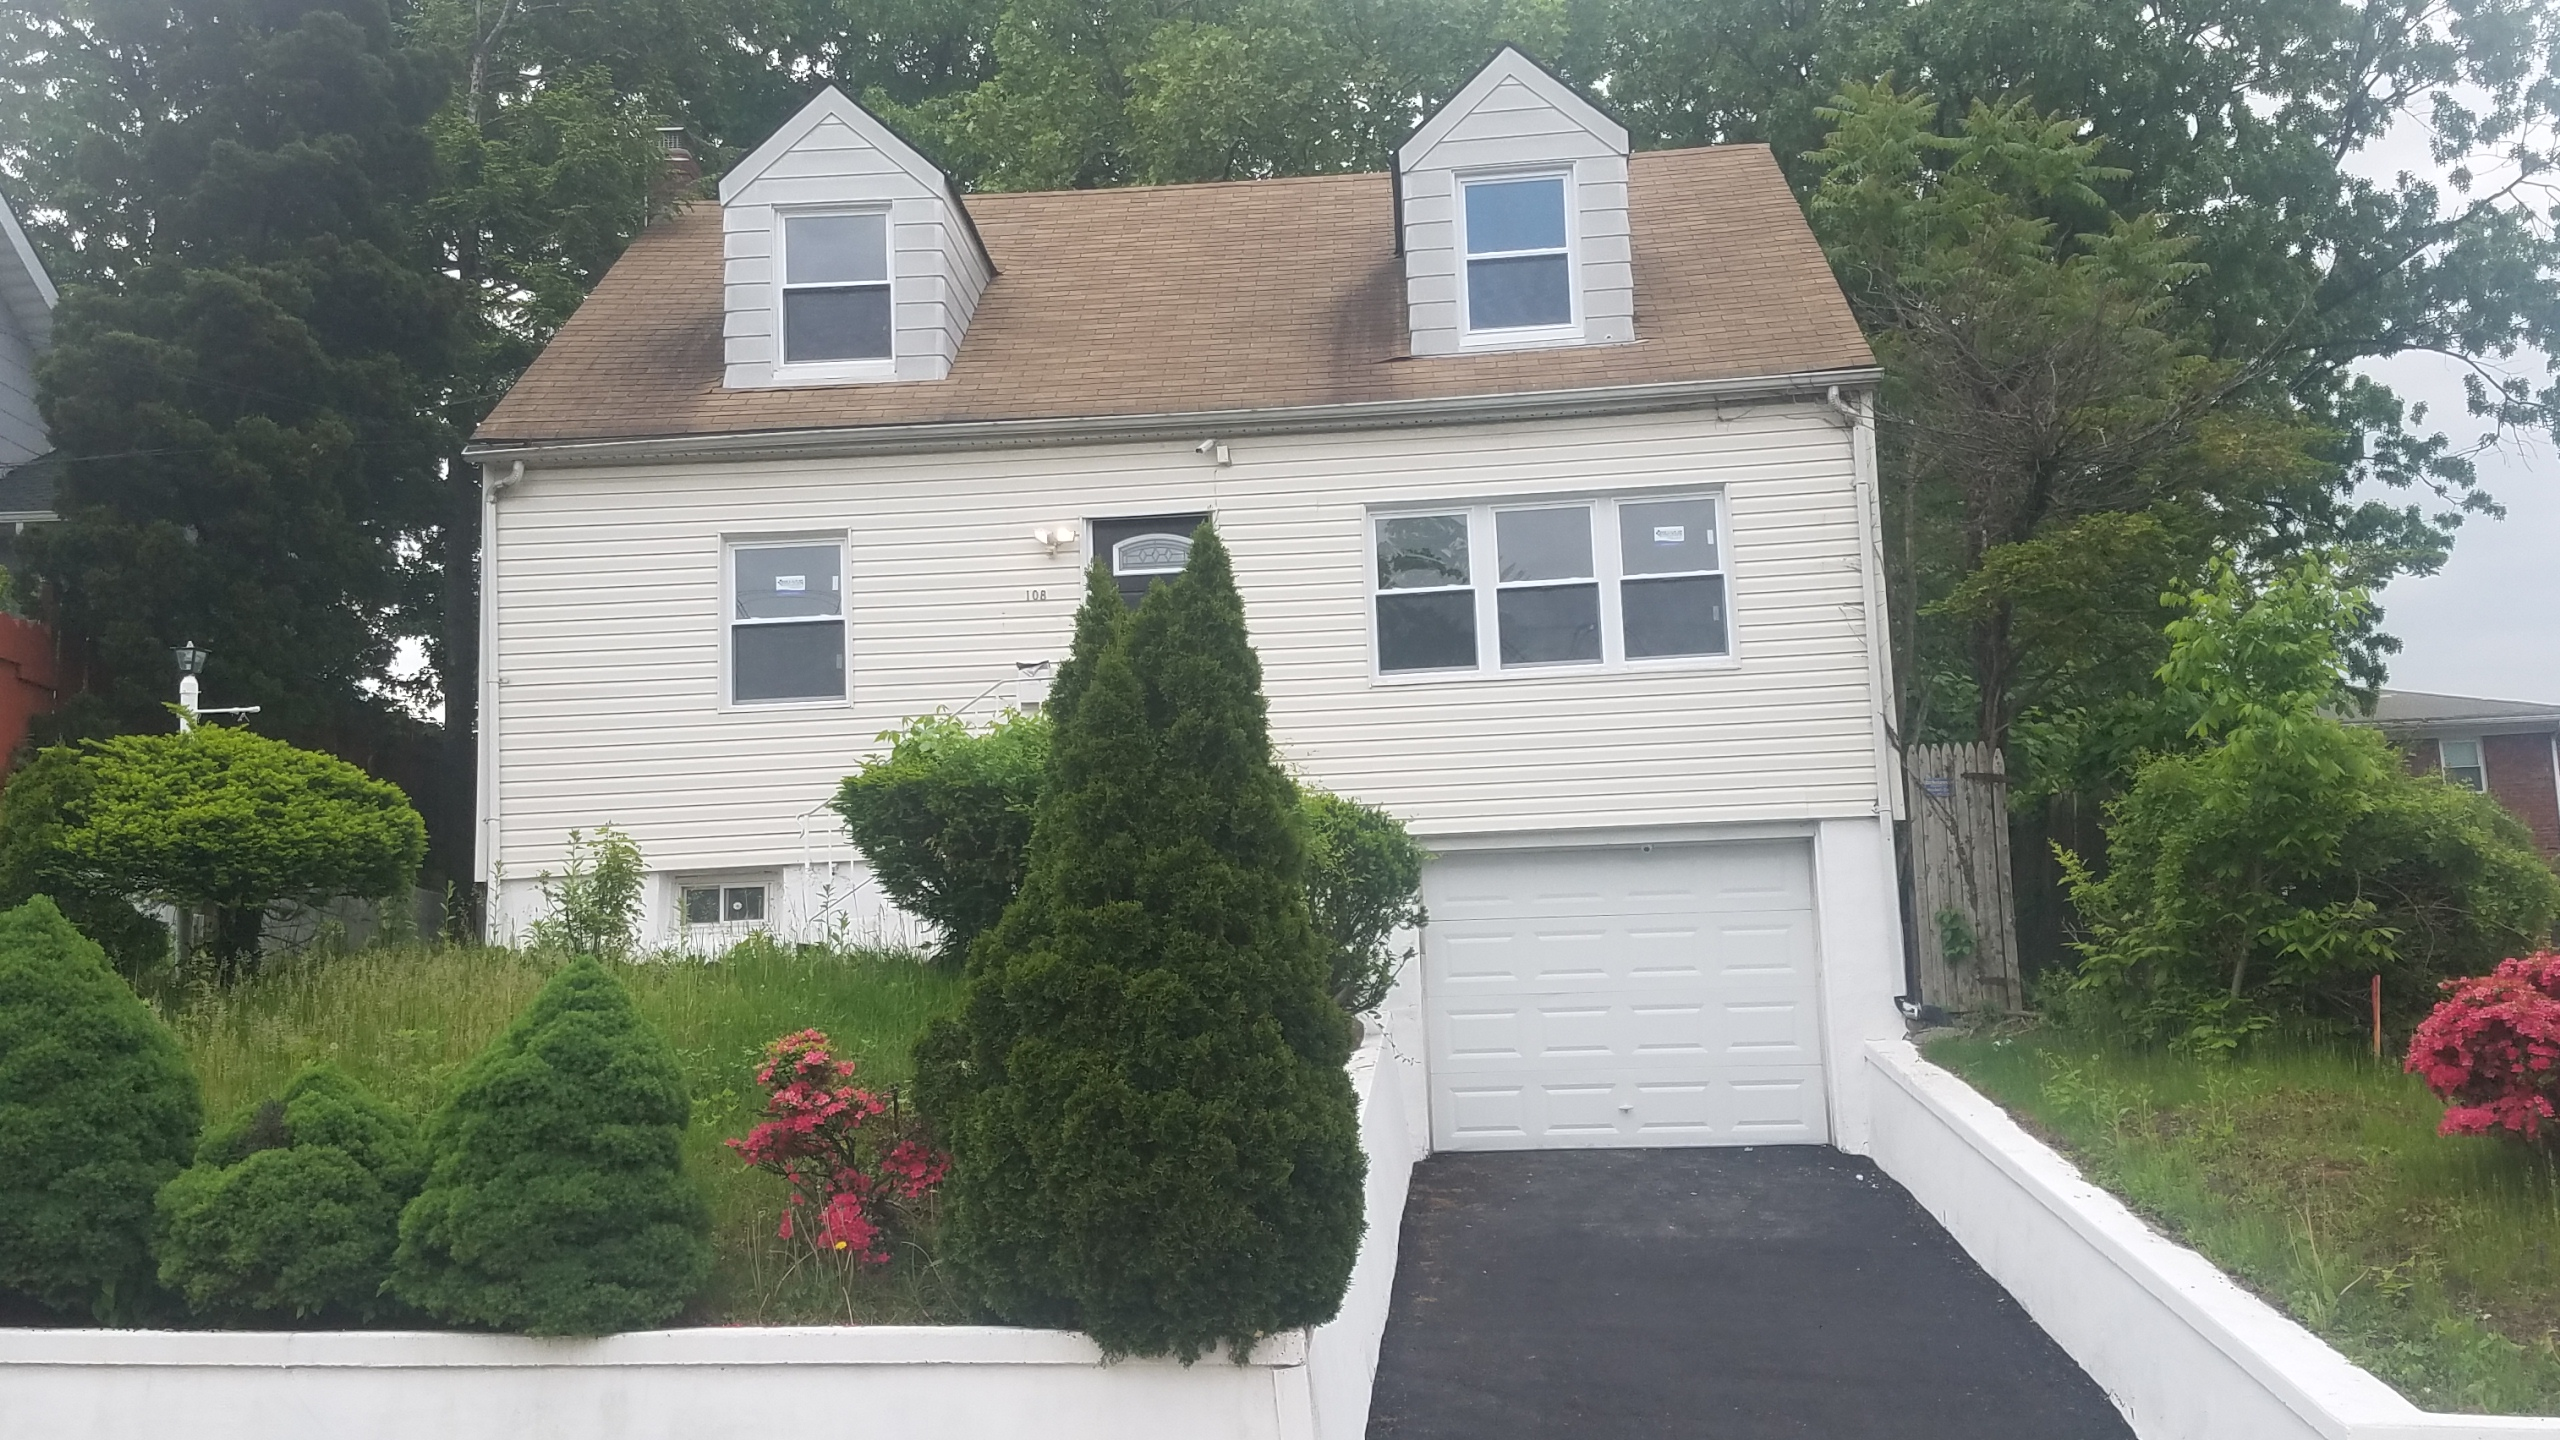 NEW REO – 2FAMILY – 108 SUNSET PL PALISADES PARK, NJ – $755,500